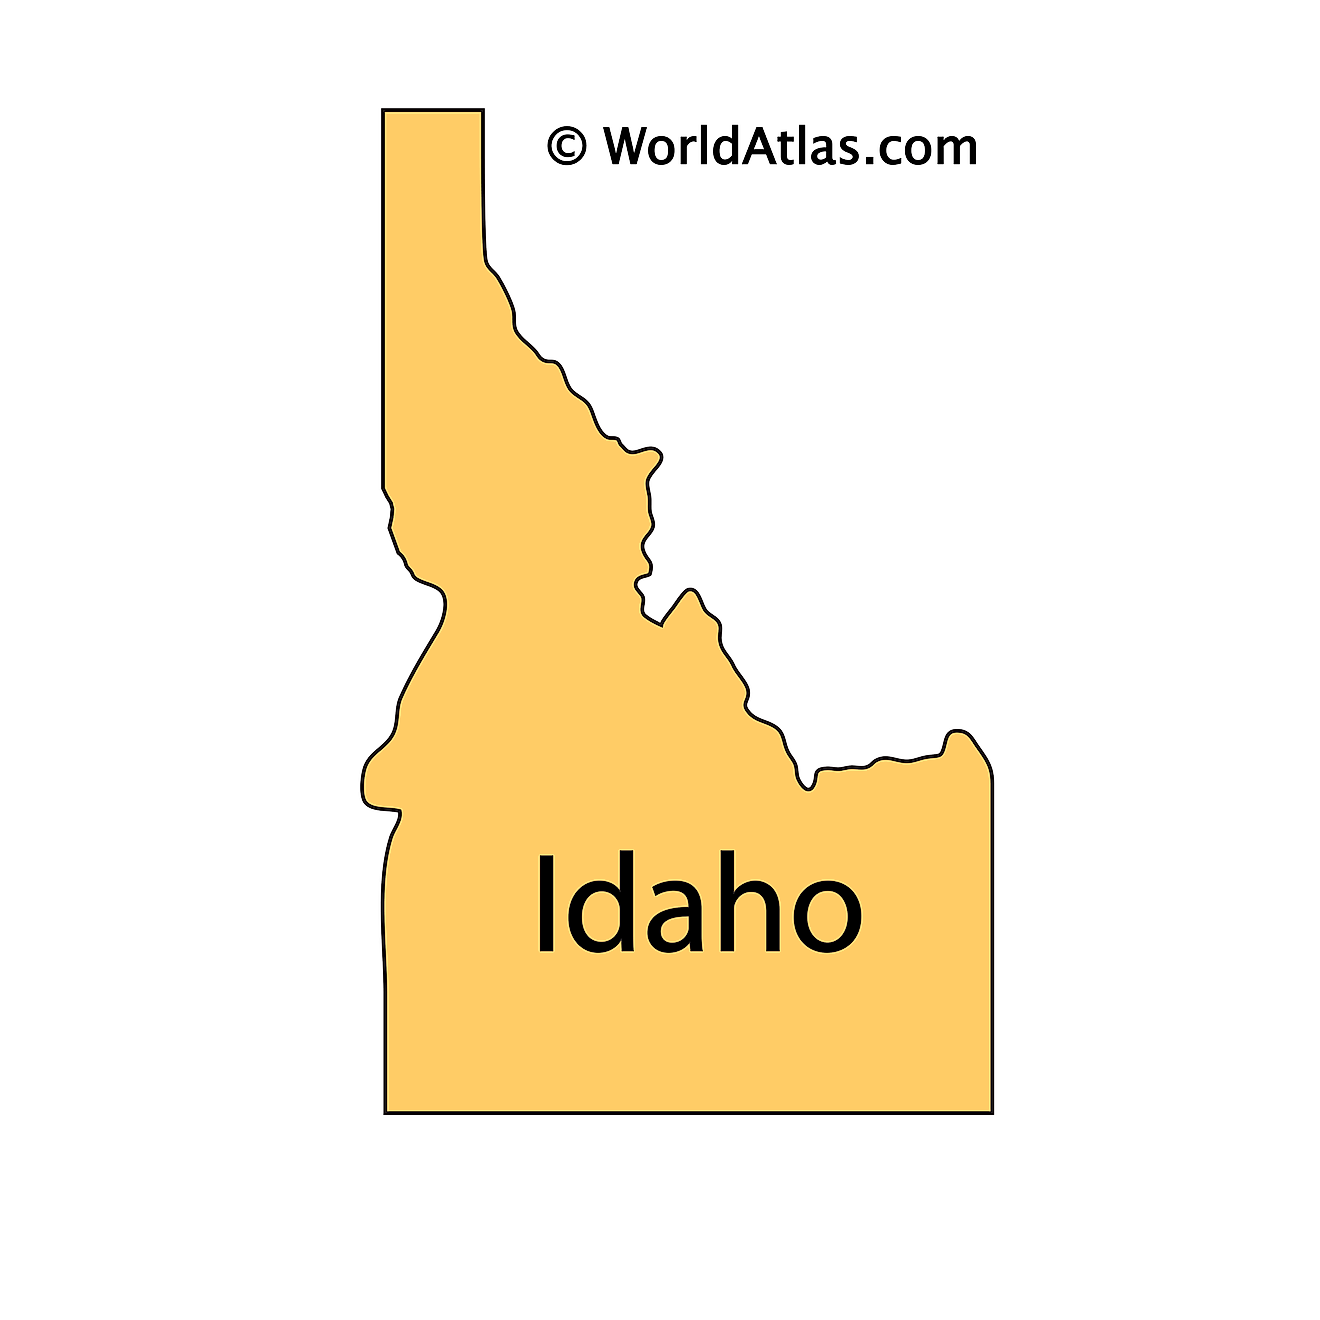 Outline Map of Idaho